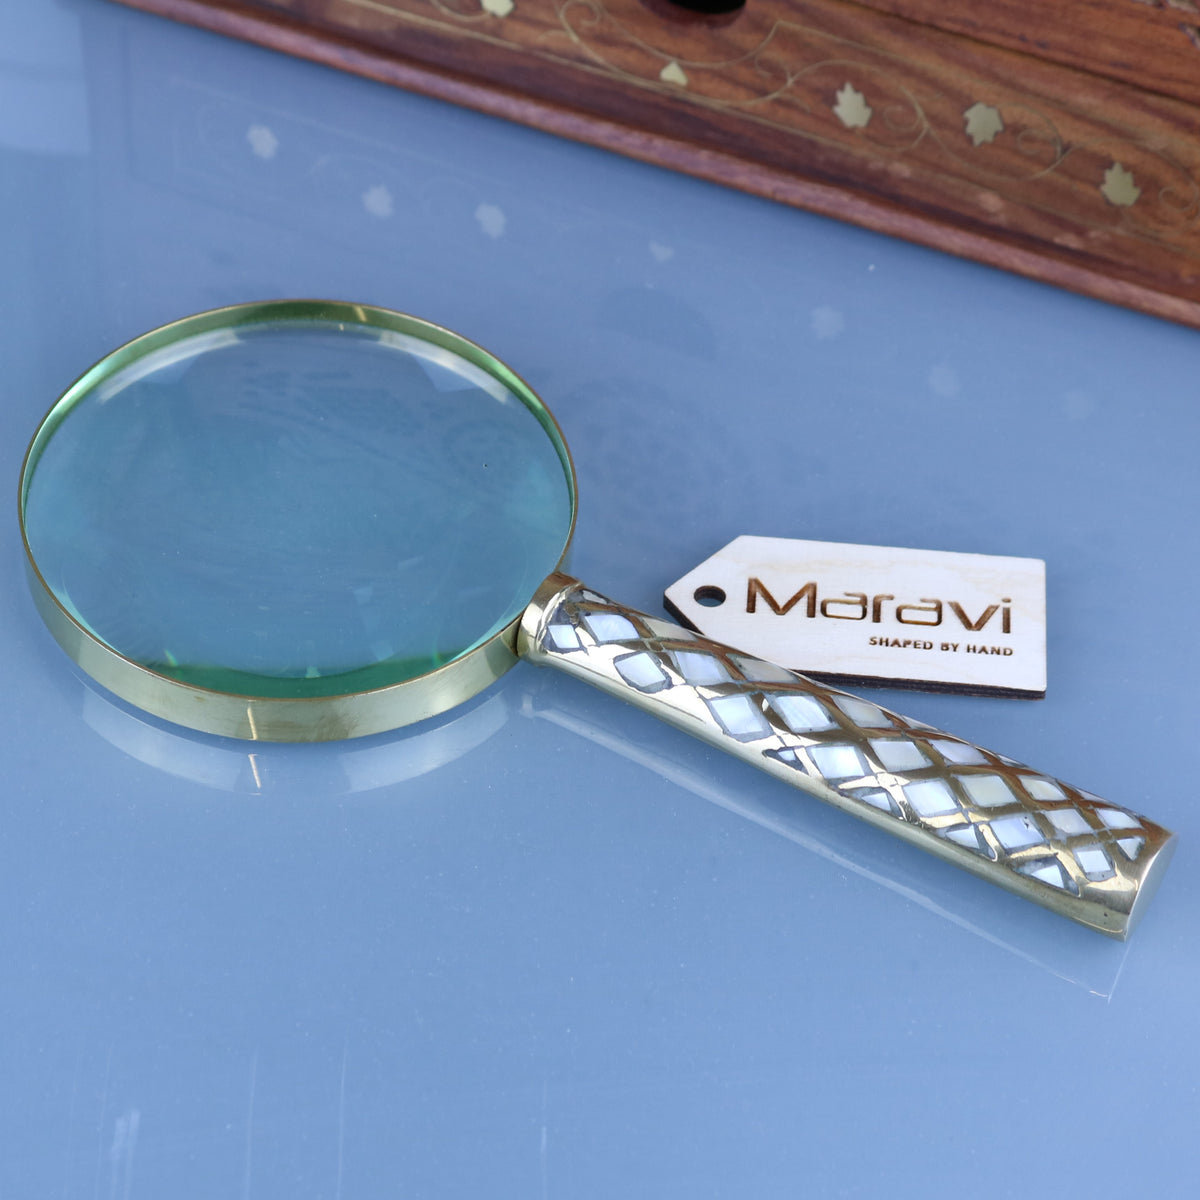 Zuari Brass Magnifying Glass and Letter Opener Set